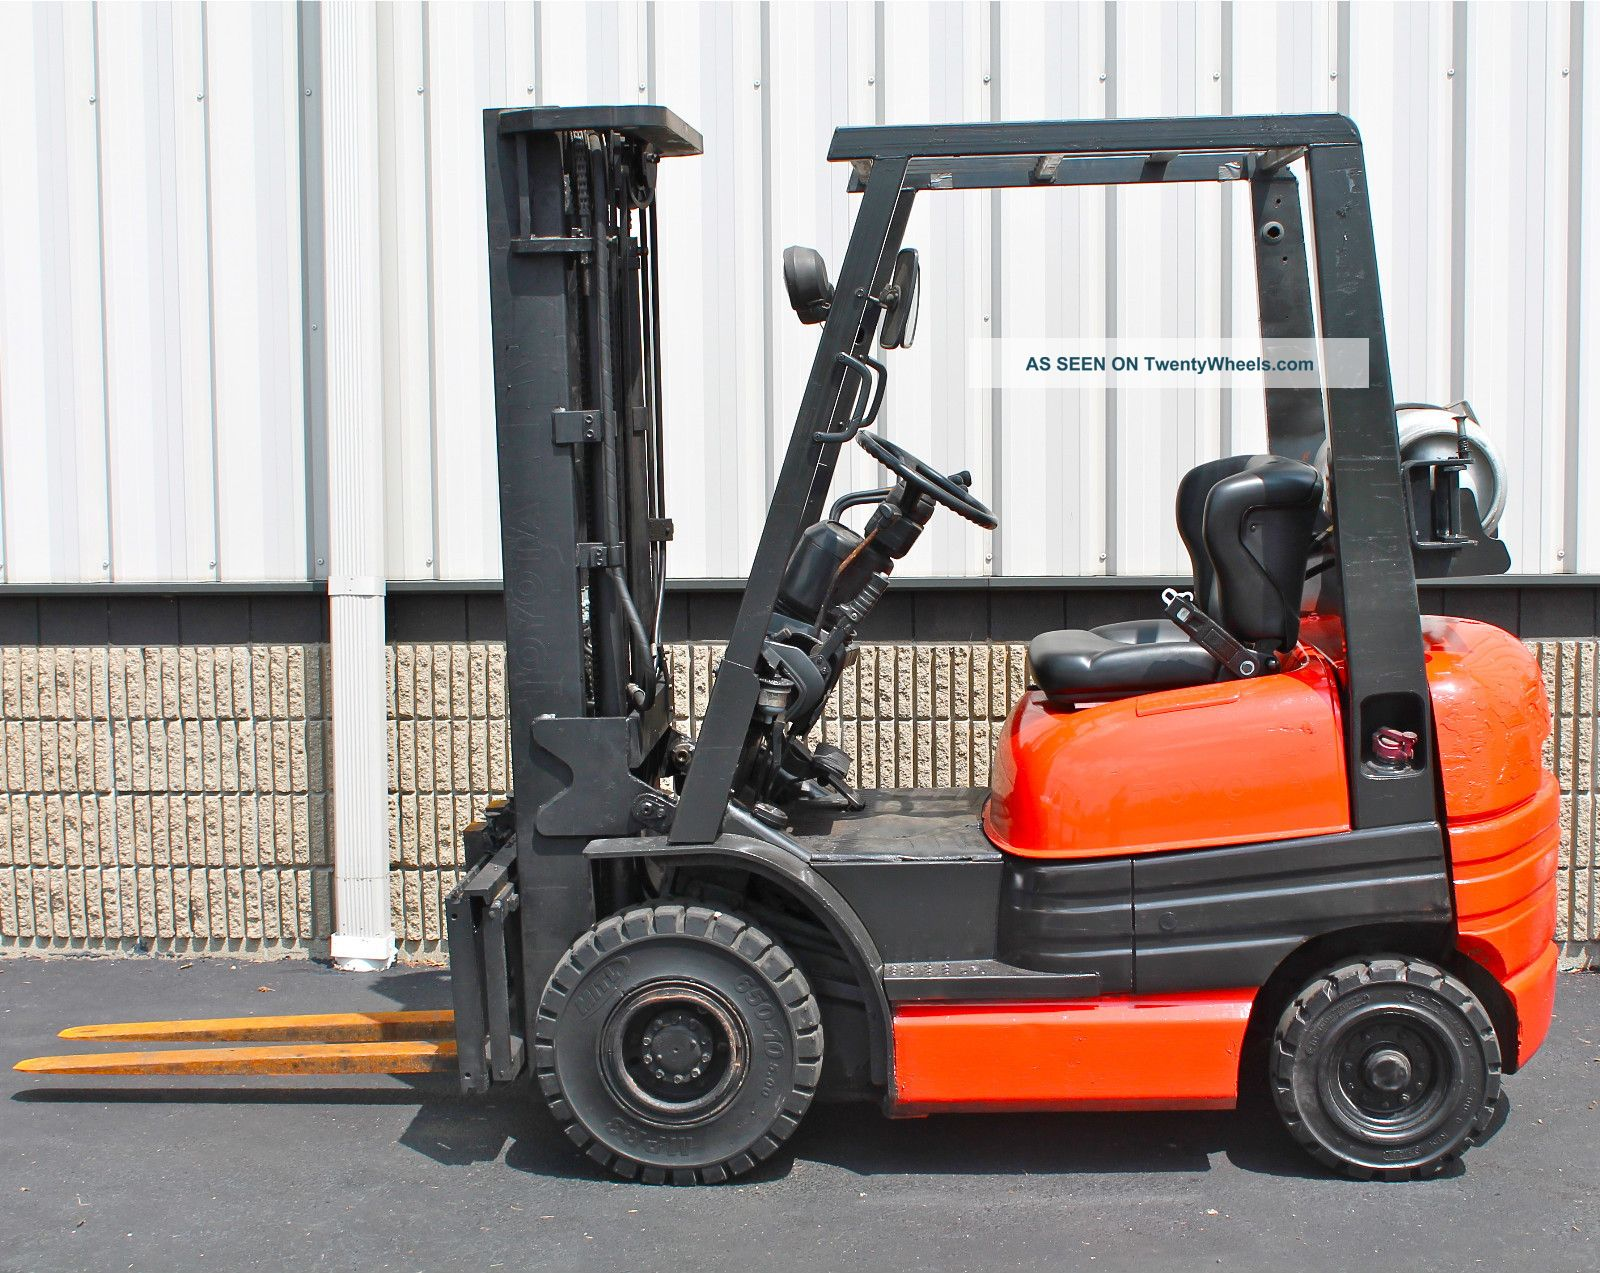 Mule Tow Tractor : Toyota fgu sn solid pneumatic forklift